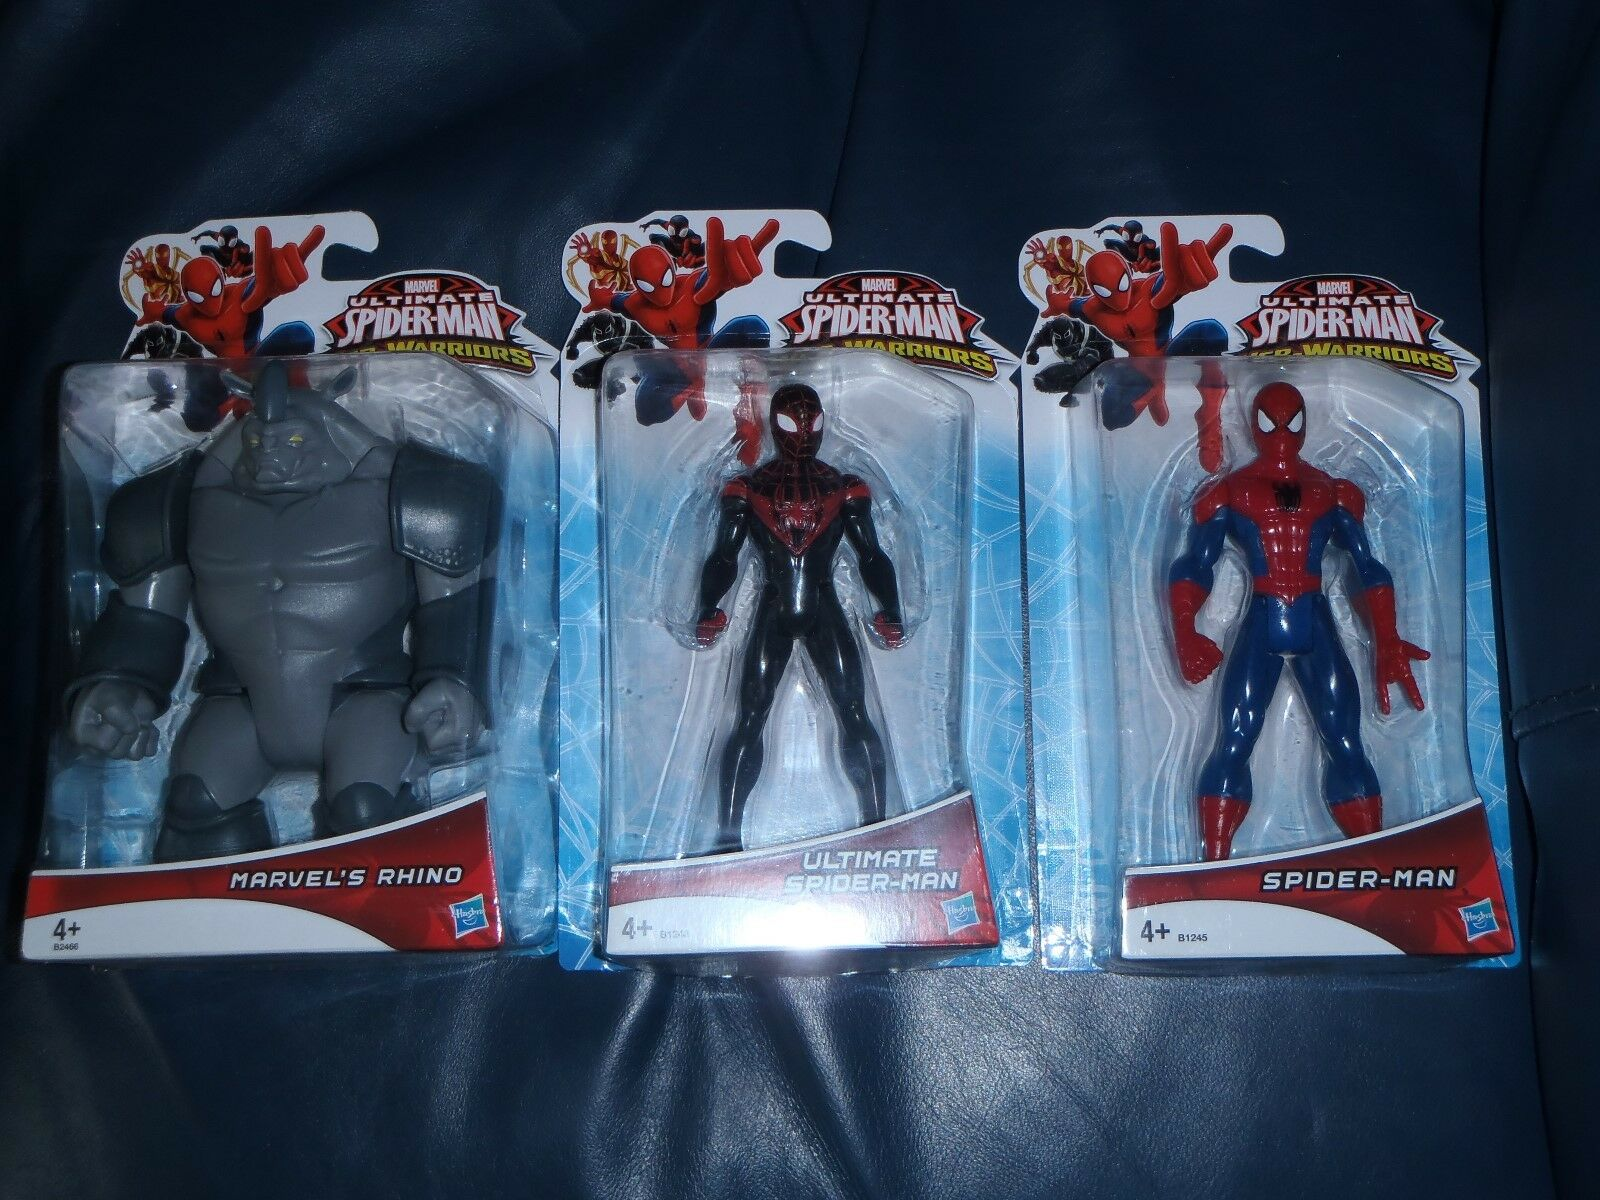 3 x WEB-GUERRIERI Ultimate Spider-Man, meraviglie Rhino + SPIDER-MAN Figure * NUOVO *